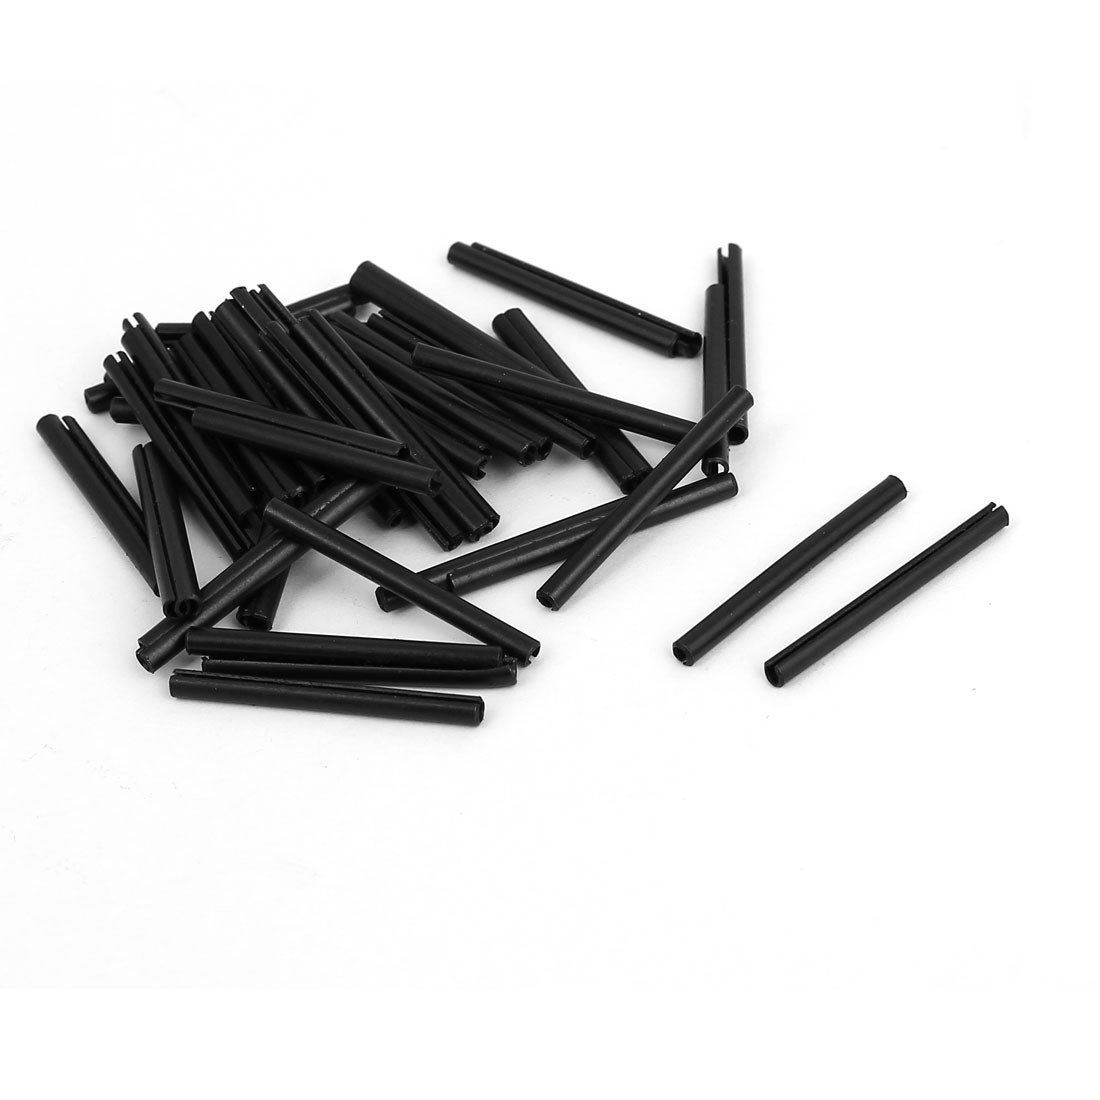 M2x25mm Carbon Steel Split Spring Cylindrical Pin Dowel Cotter Pins Hardware 50pcs